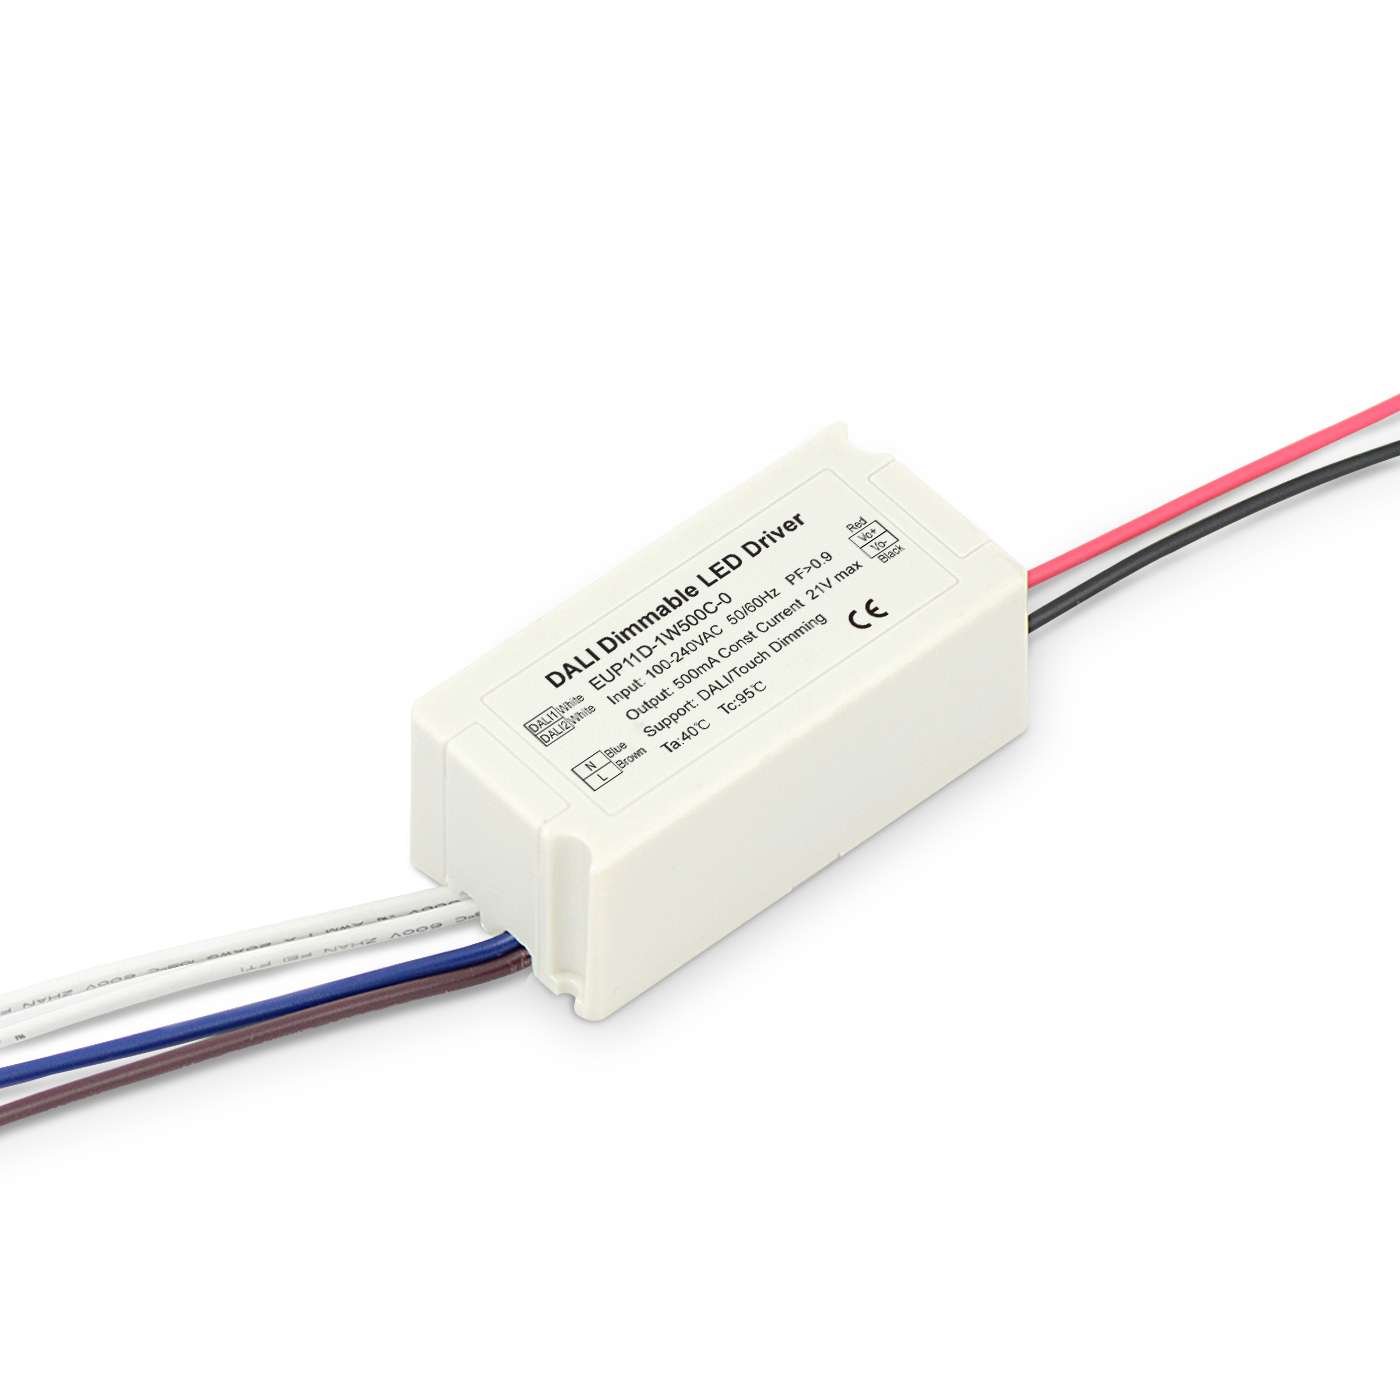 11W 500mA DALI Dimming Constant Current LED Driver EUP11D-1W500C-0 Featured Image